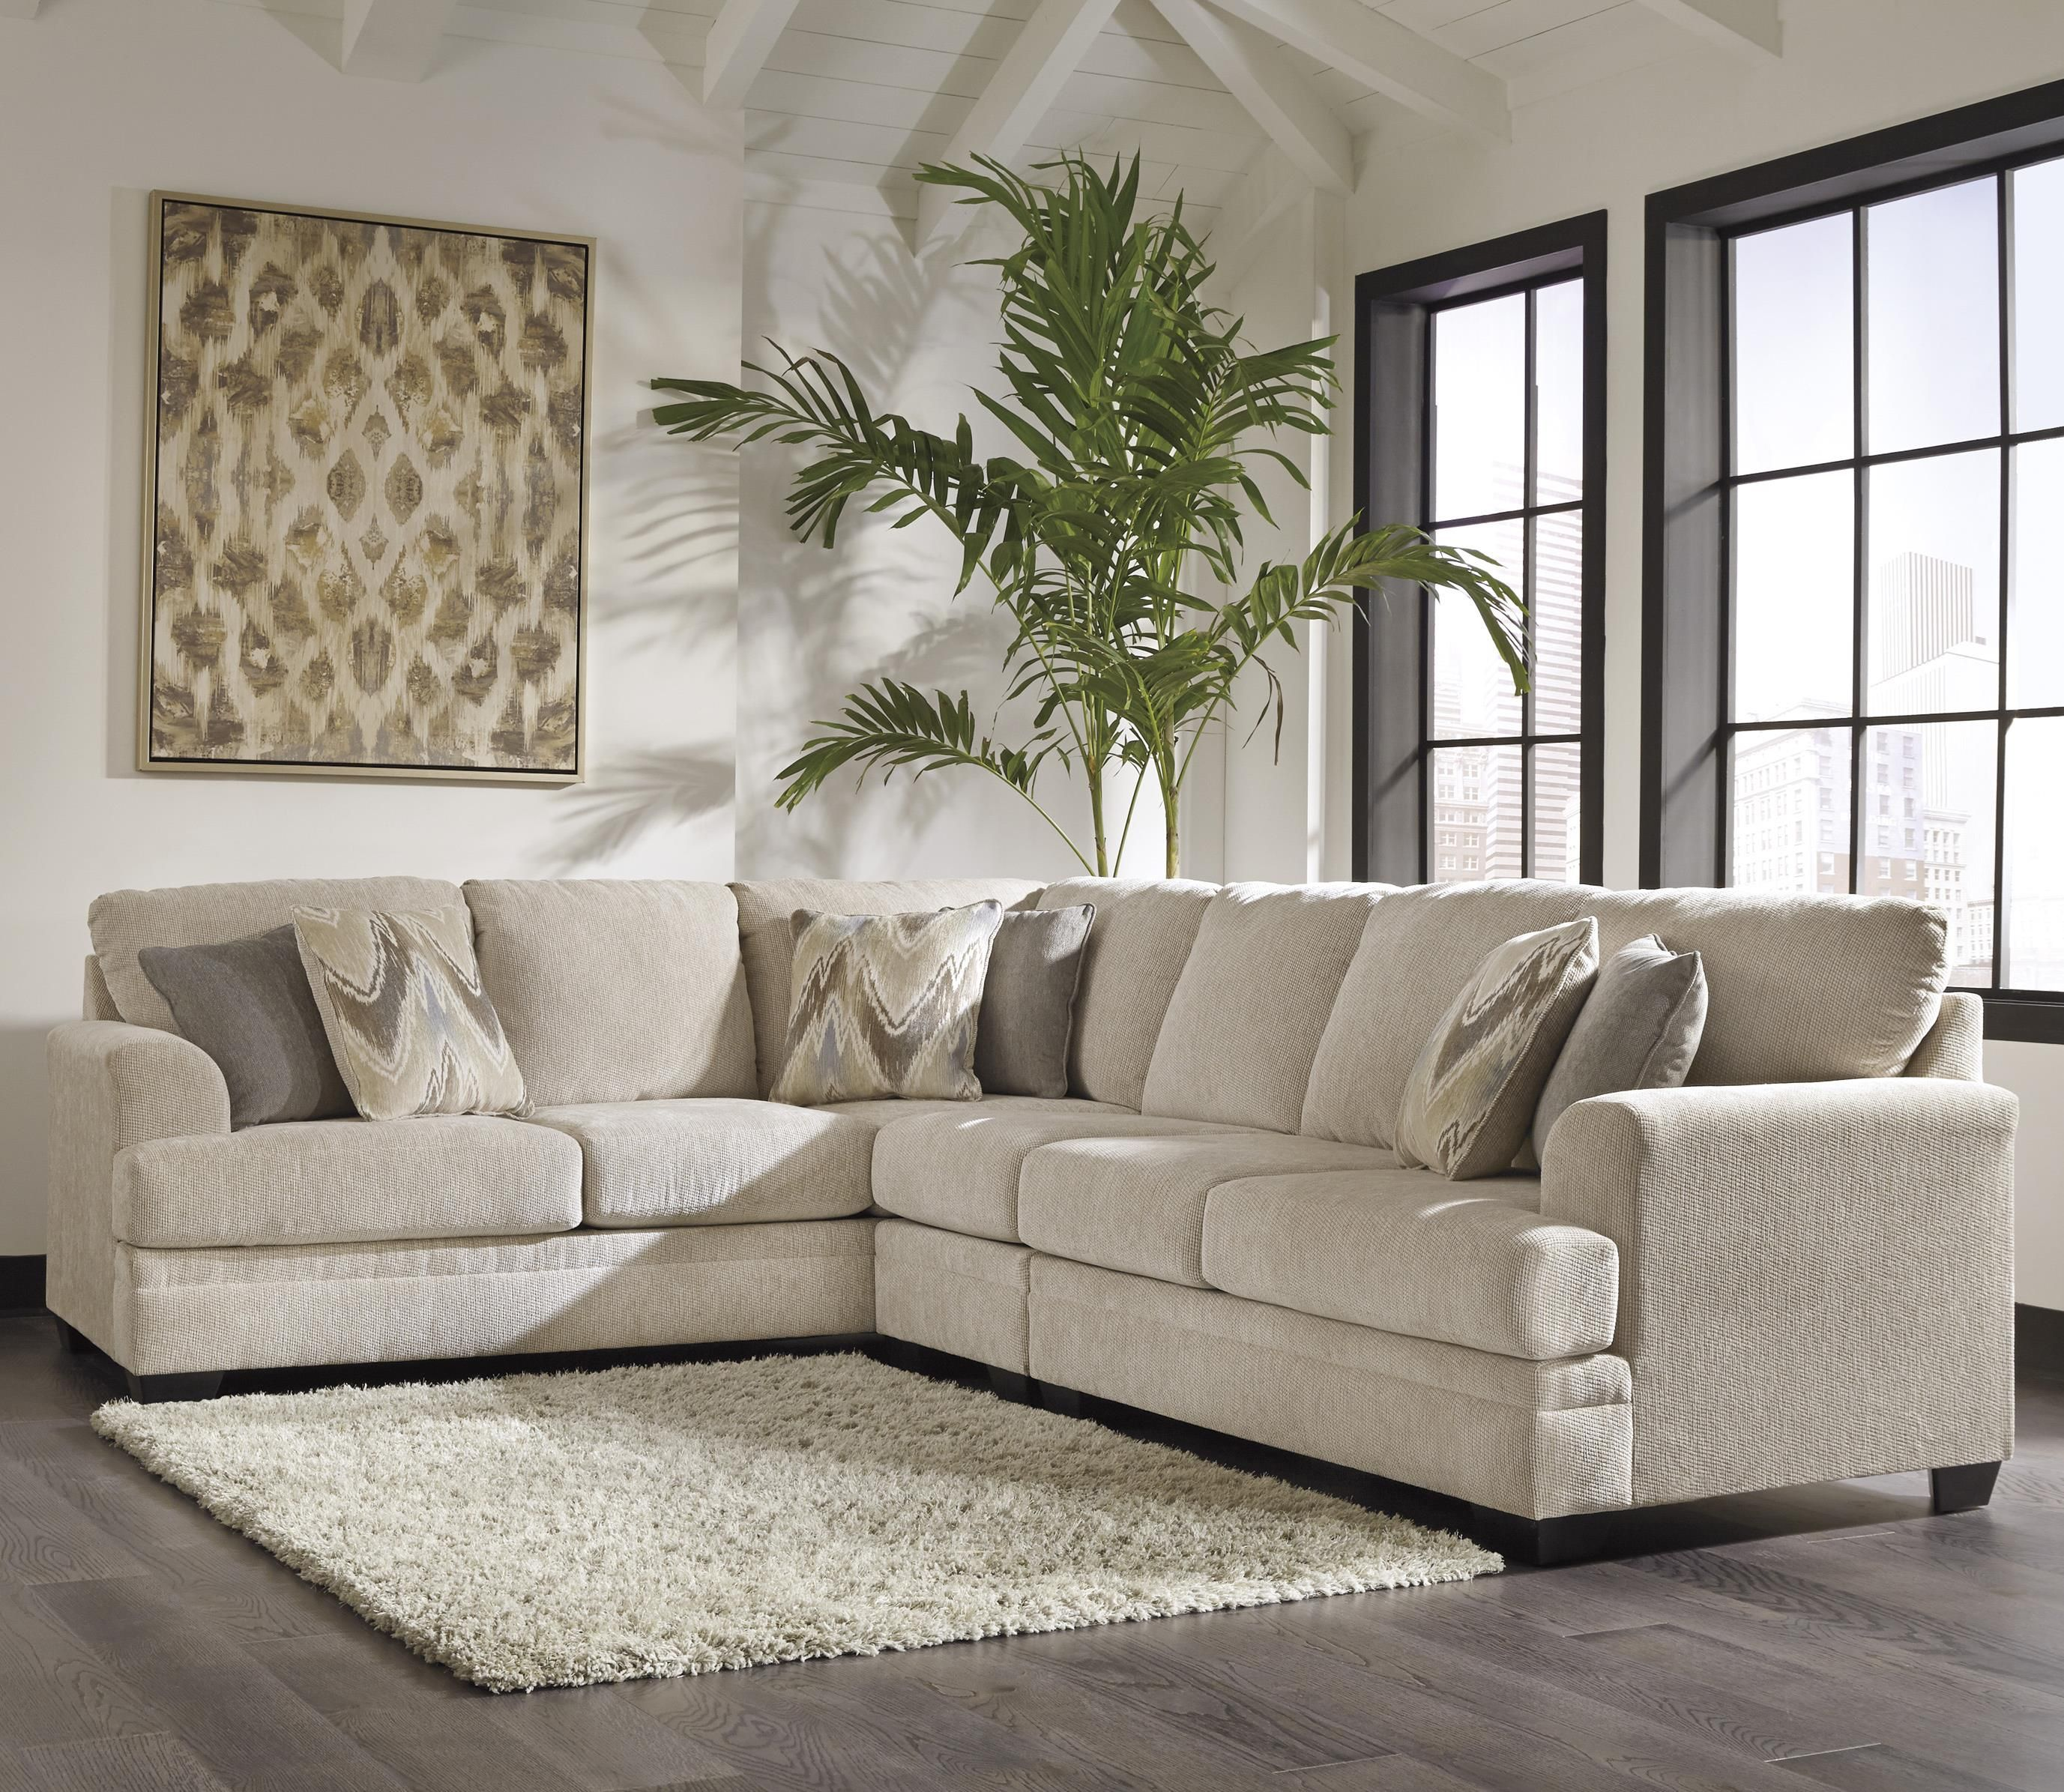 mmfurniture sectional from benchcraft by cresson buy com piece